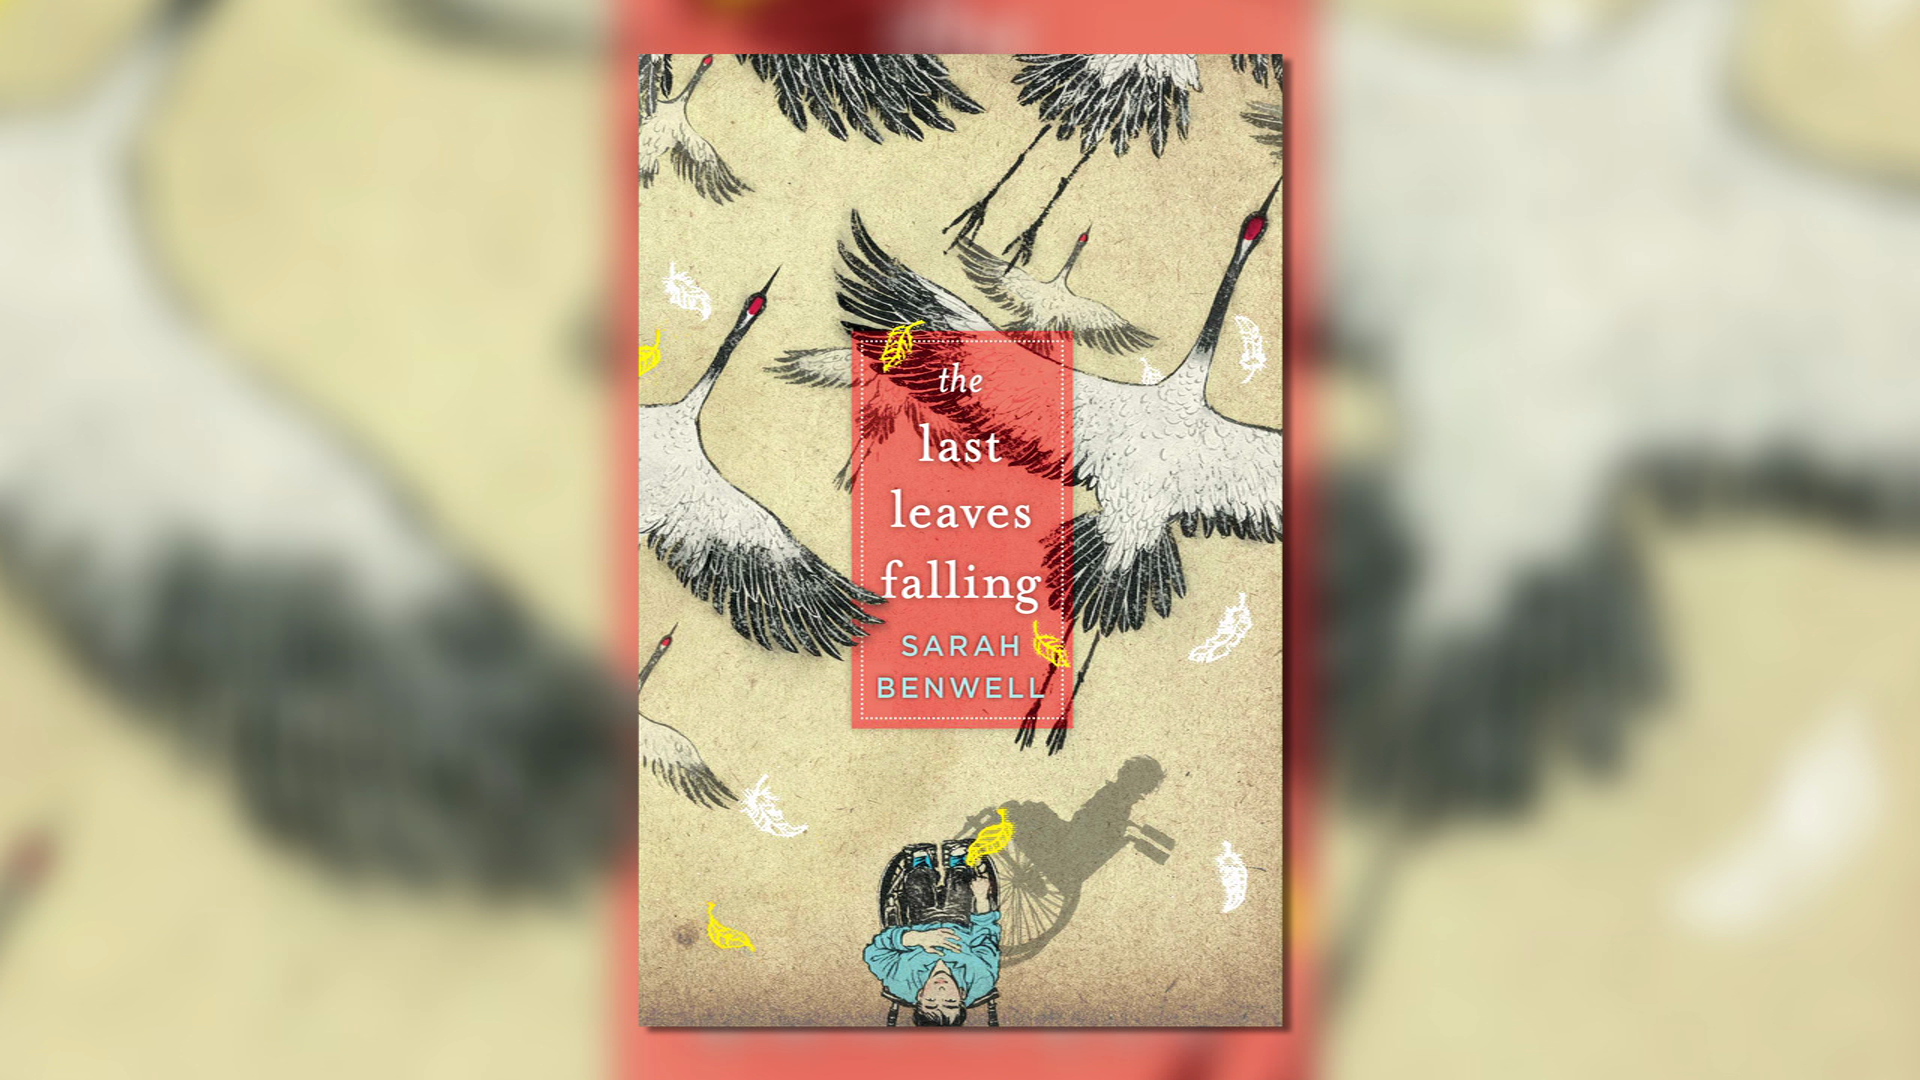 Sarah Benwell on 'The Last Leaves Falling'